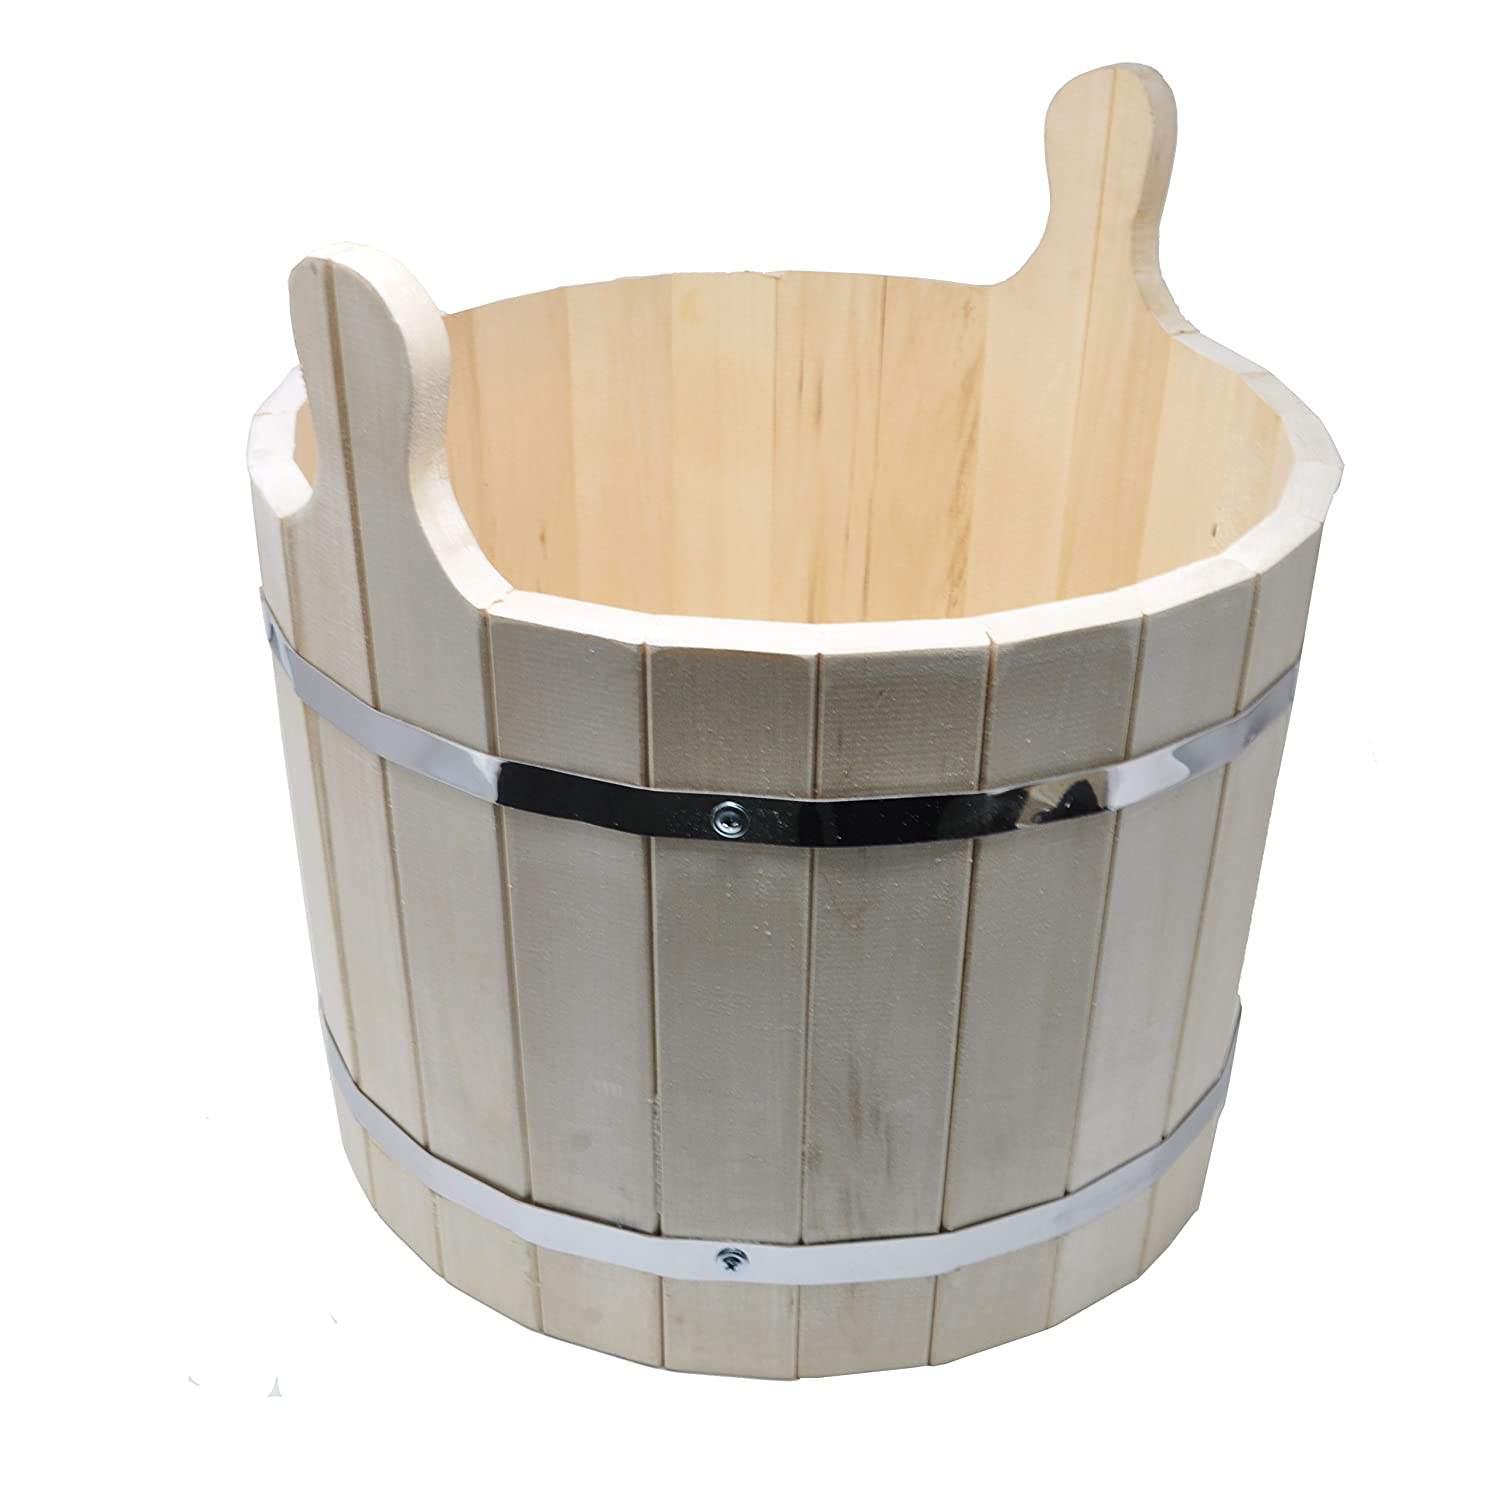 Large Natural Wooden Bucket - 20 Liters - For Sauna, Russian Banya or Decoration - Made in Siberia (Russia) Aucun